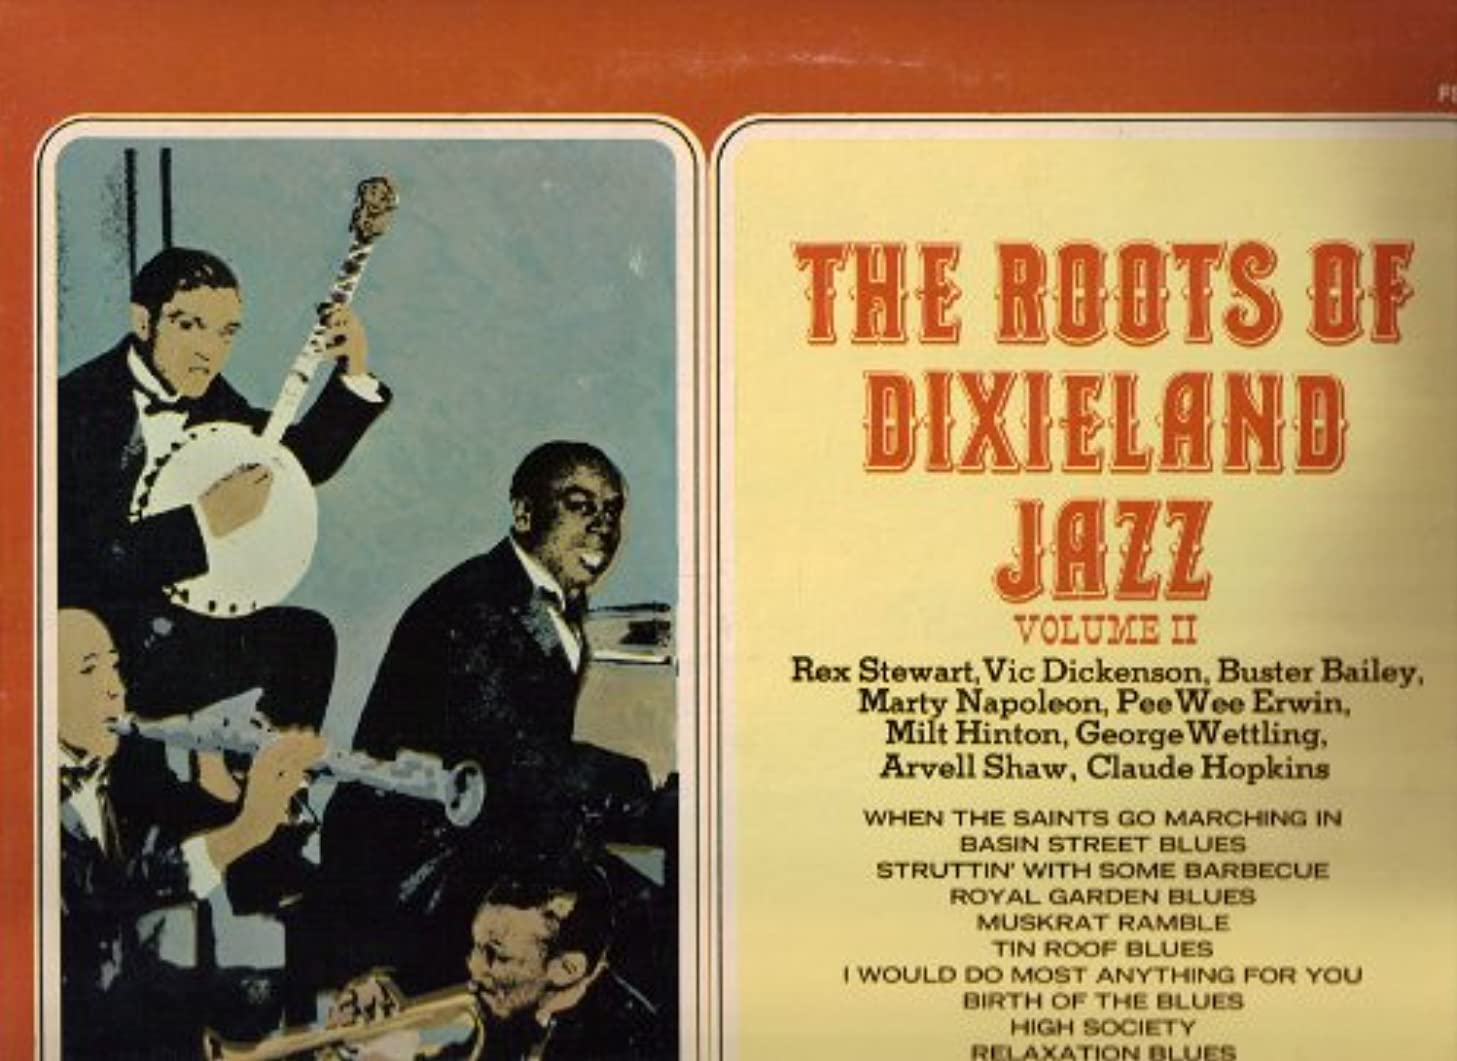 The Roots of Dixieland Jazz Vol. II